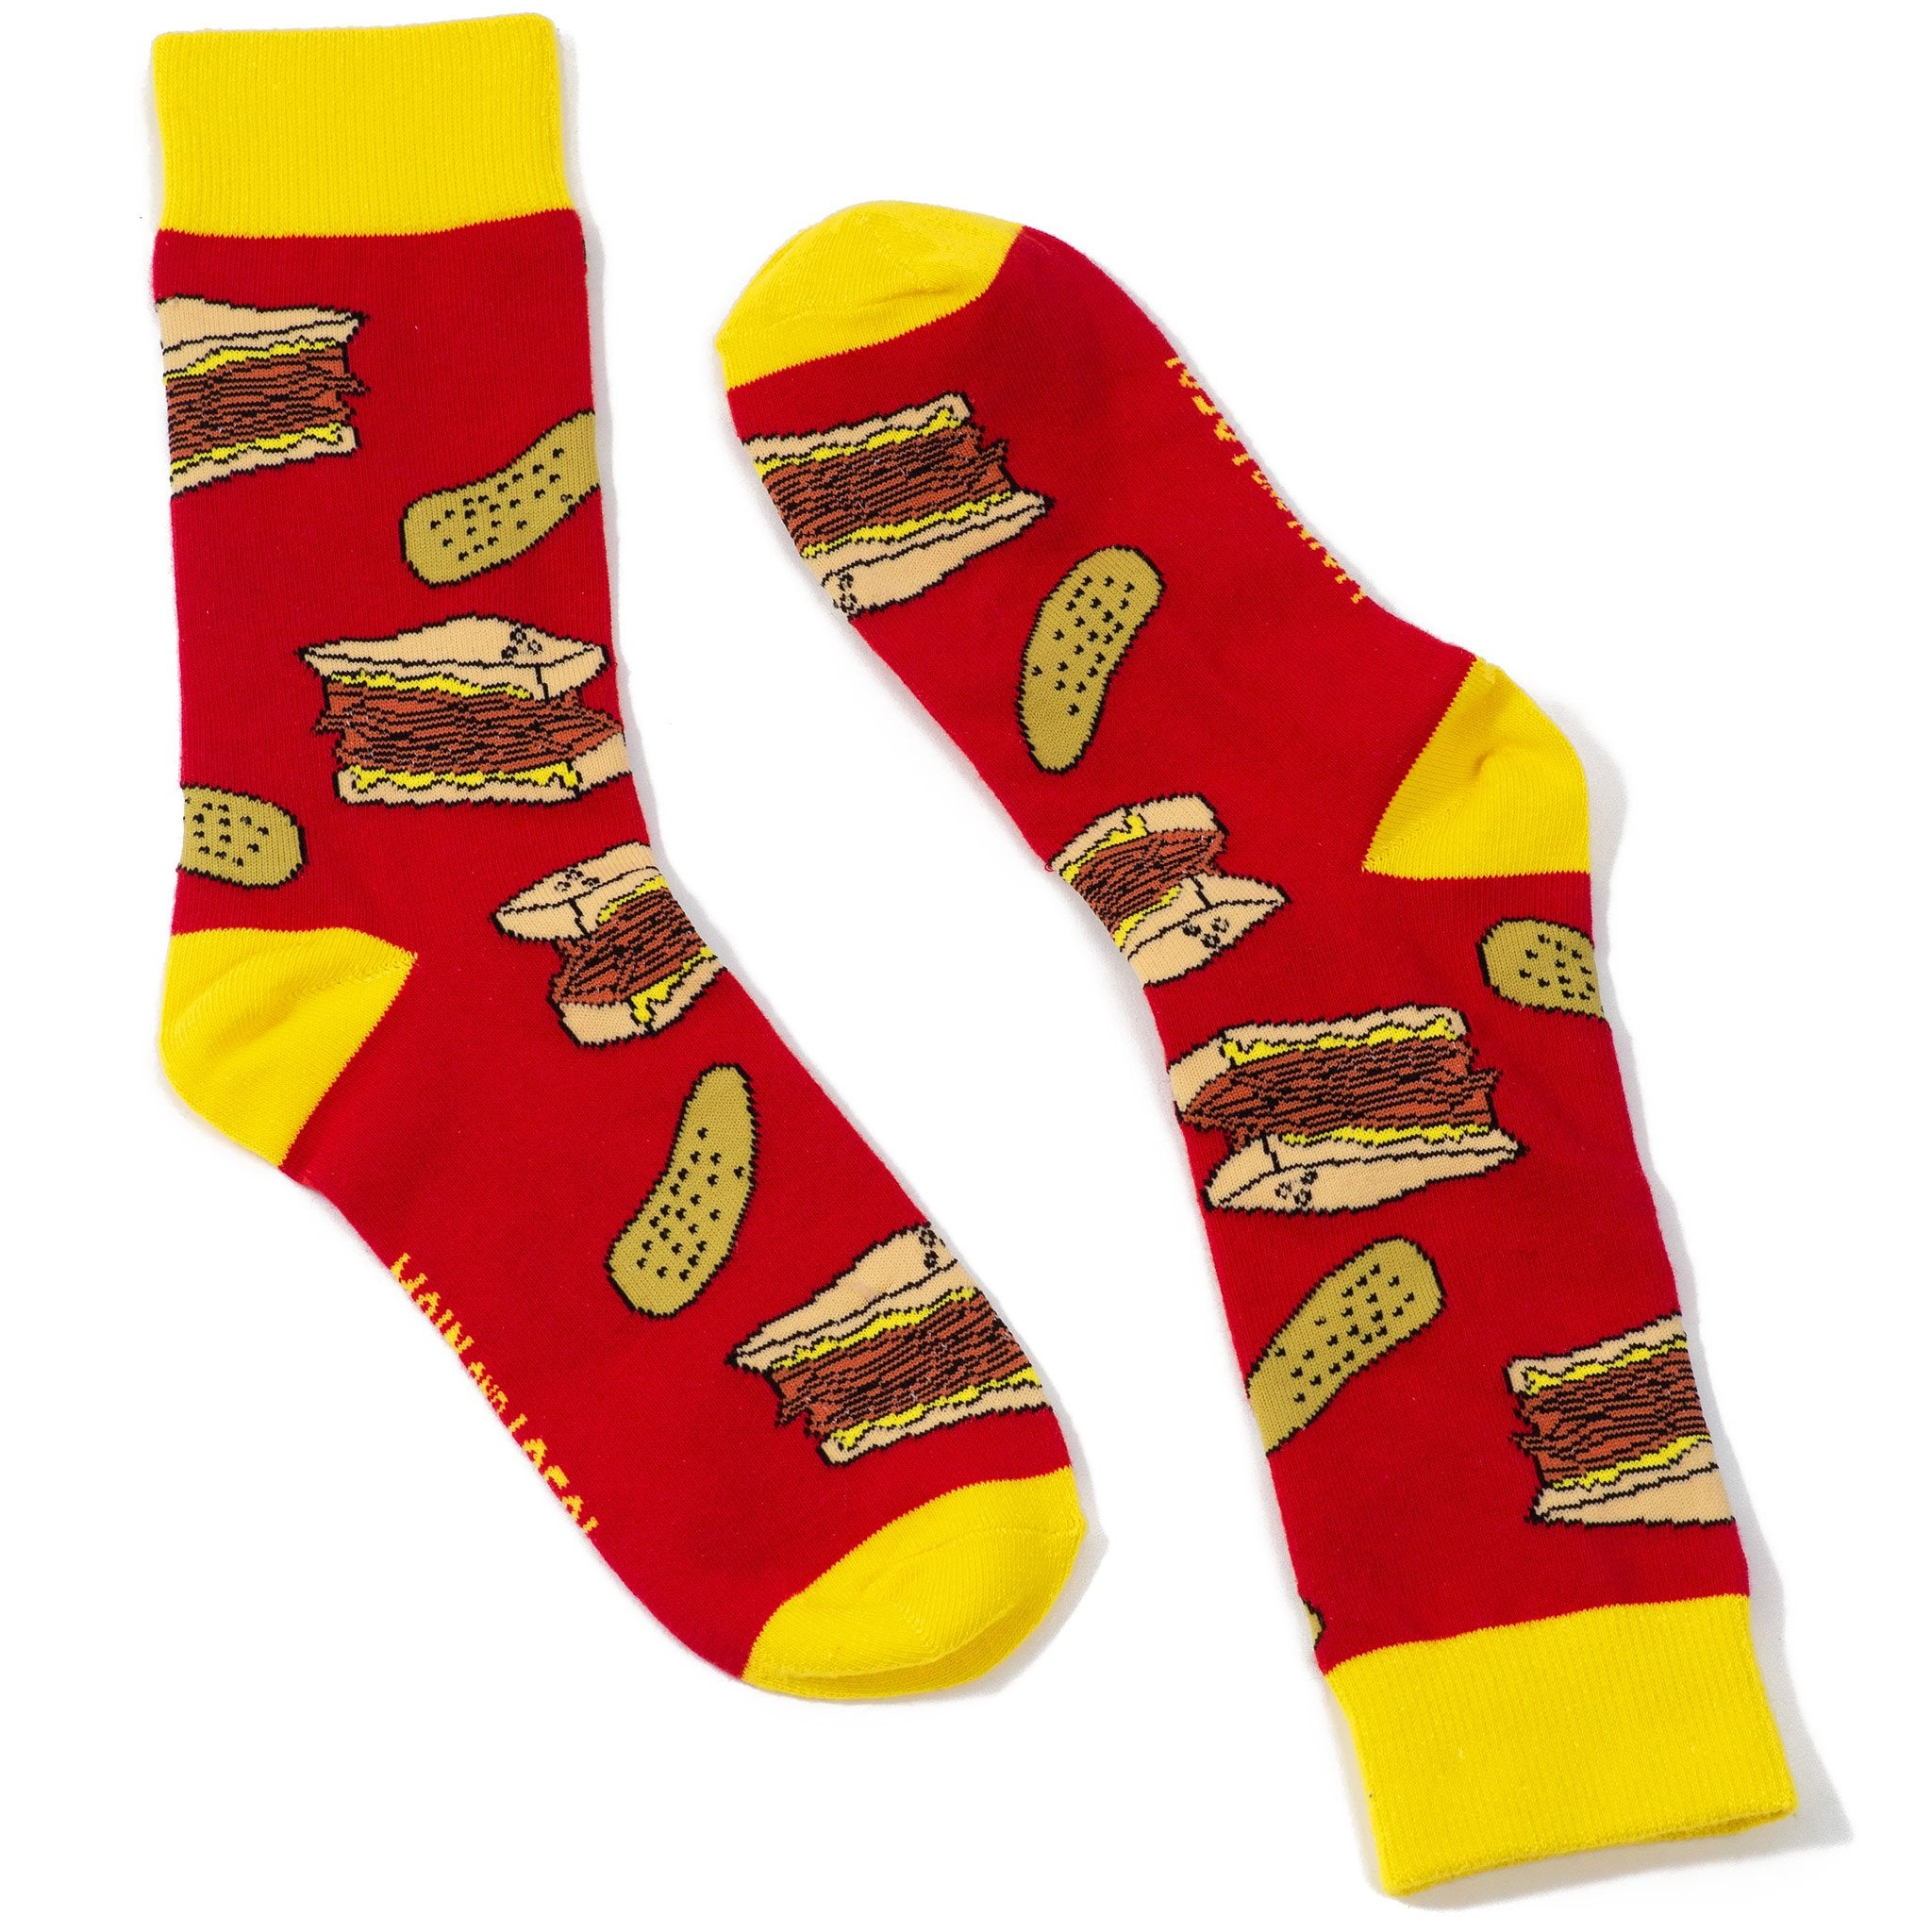 Smoked Meat and Pickles Socks